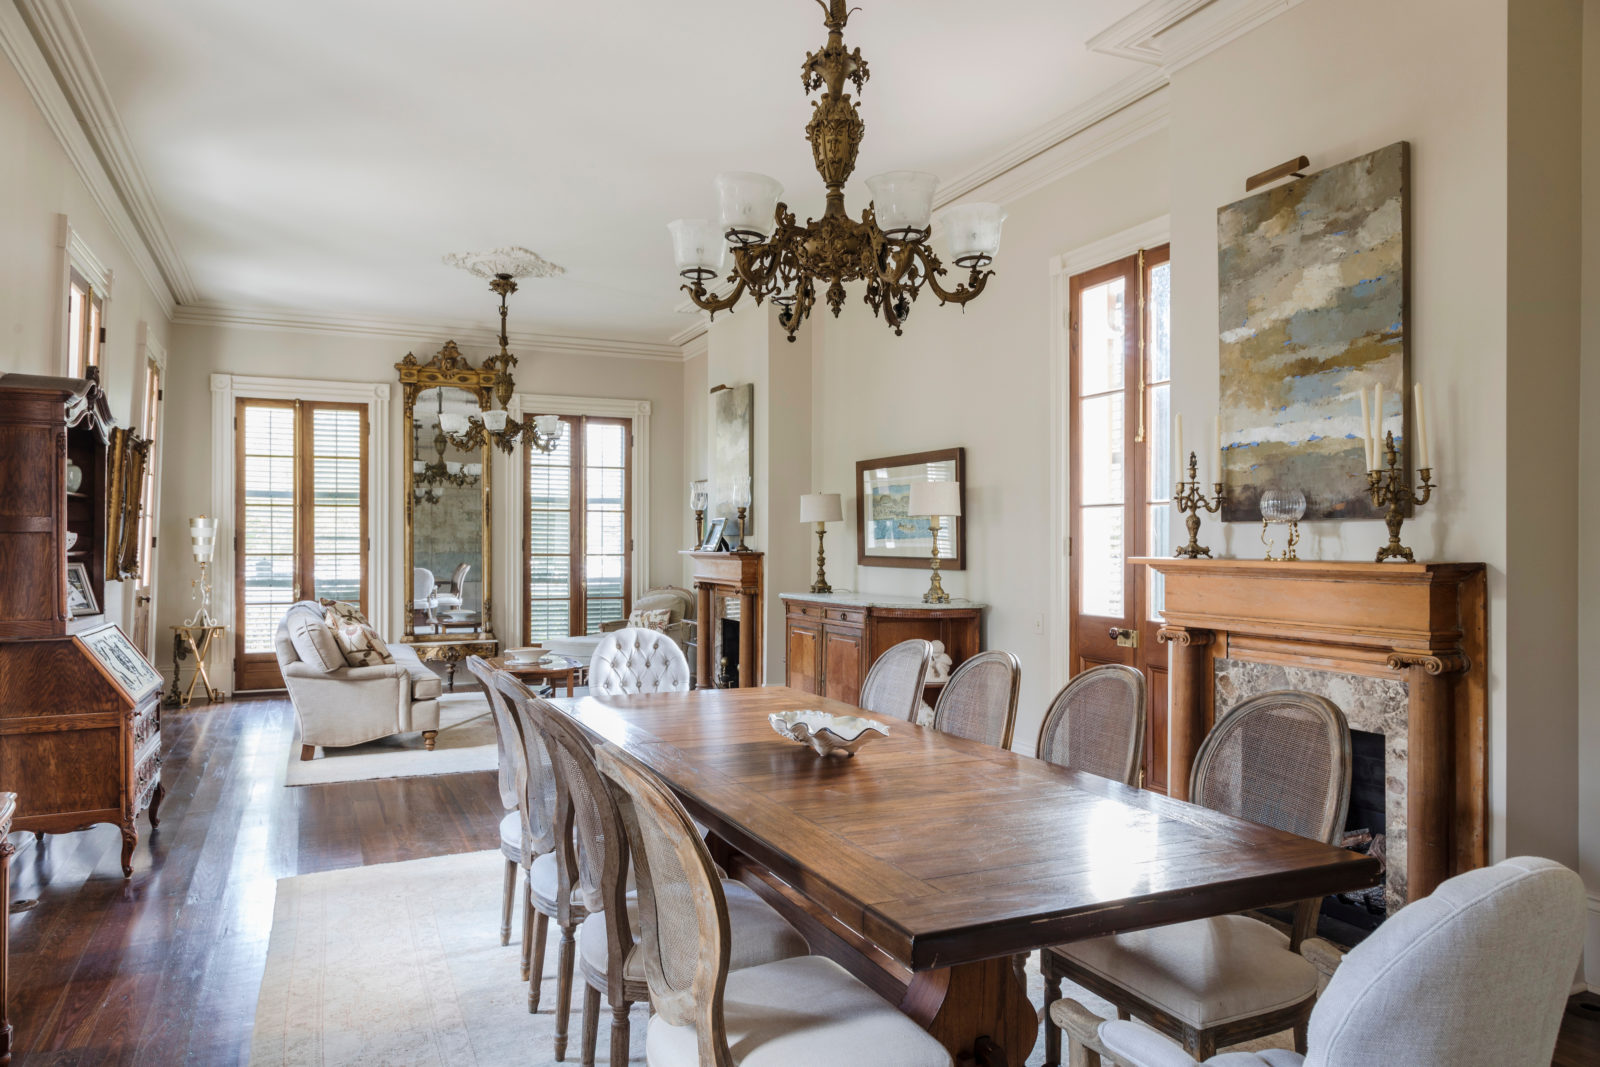 Antebellum House With A Storied History Restored In New Orleans Garden District Preservation Resource Center Of New Orleans